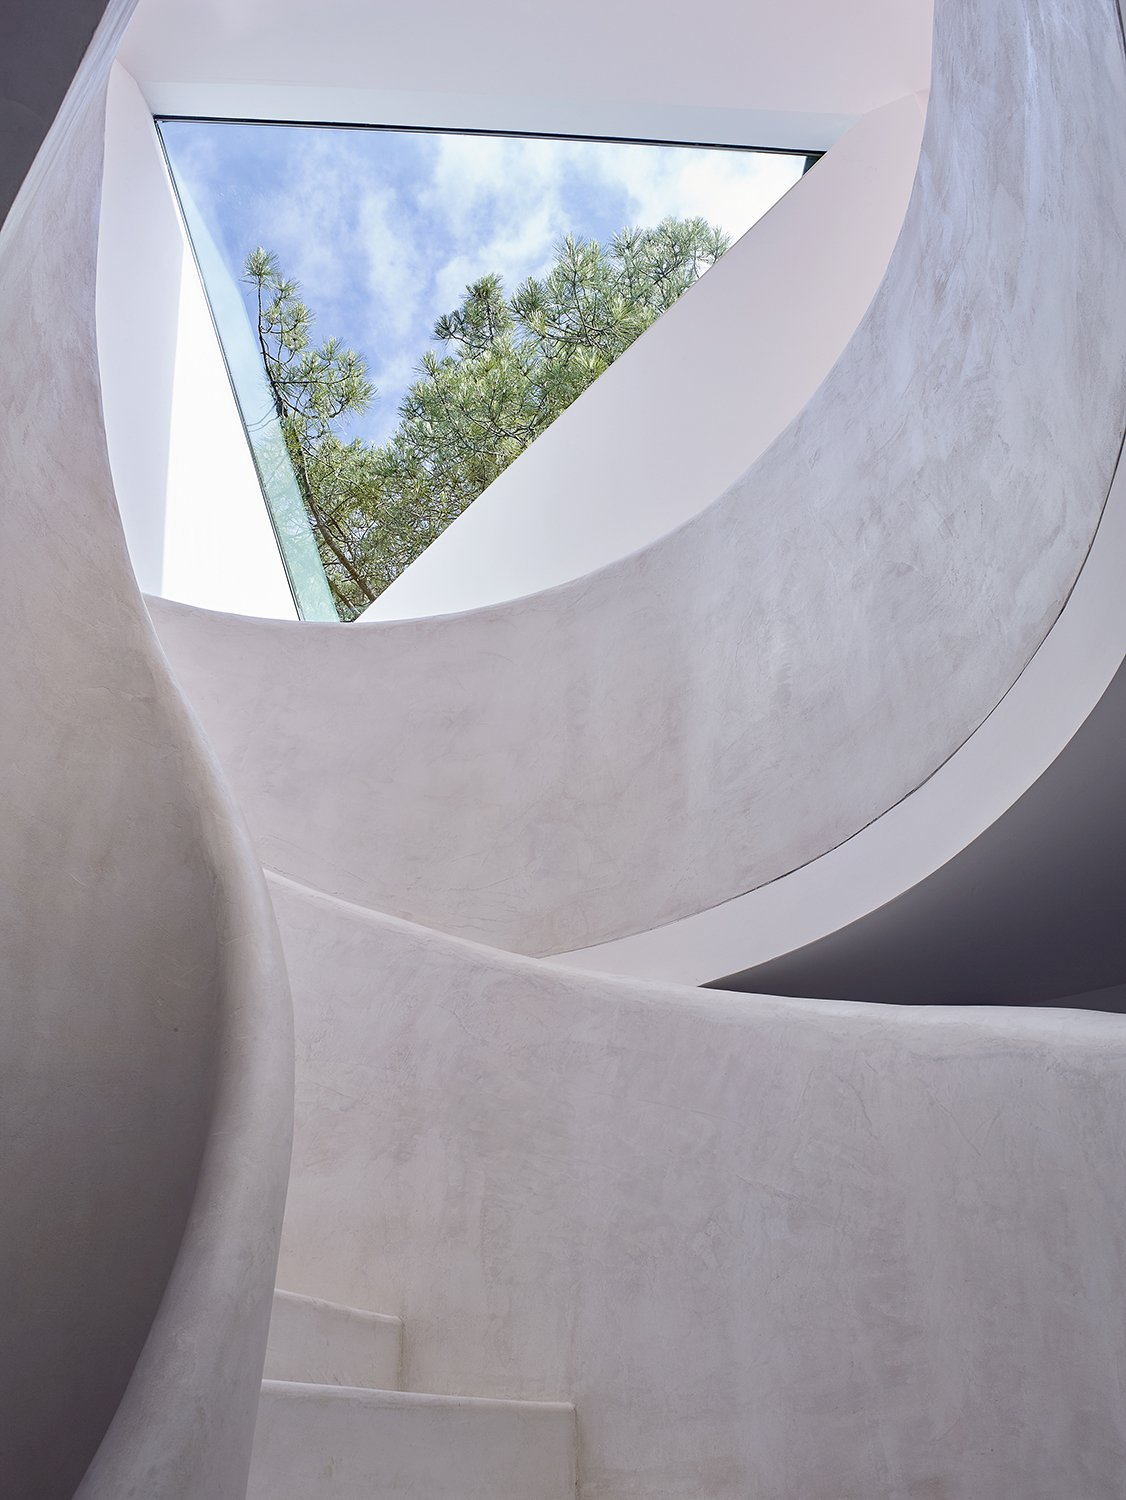 The curvilinear staircase, painted all white, contrasts with the angular forms evident throughout the home.